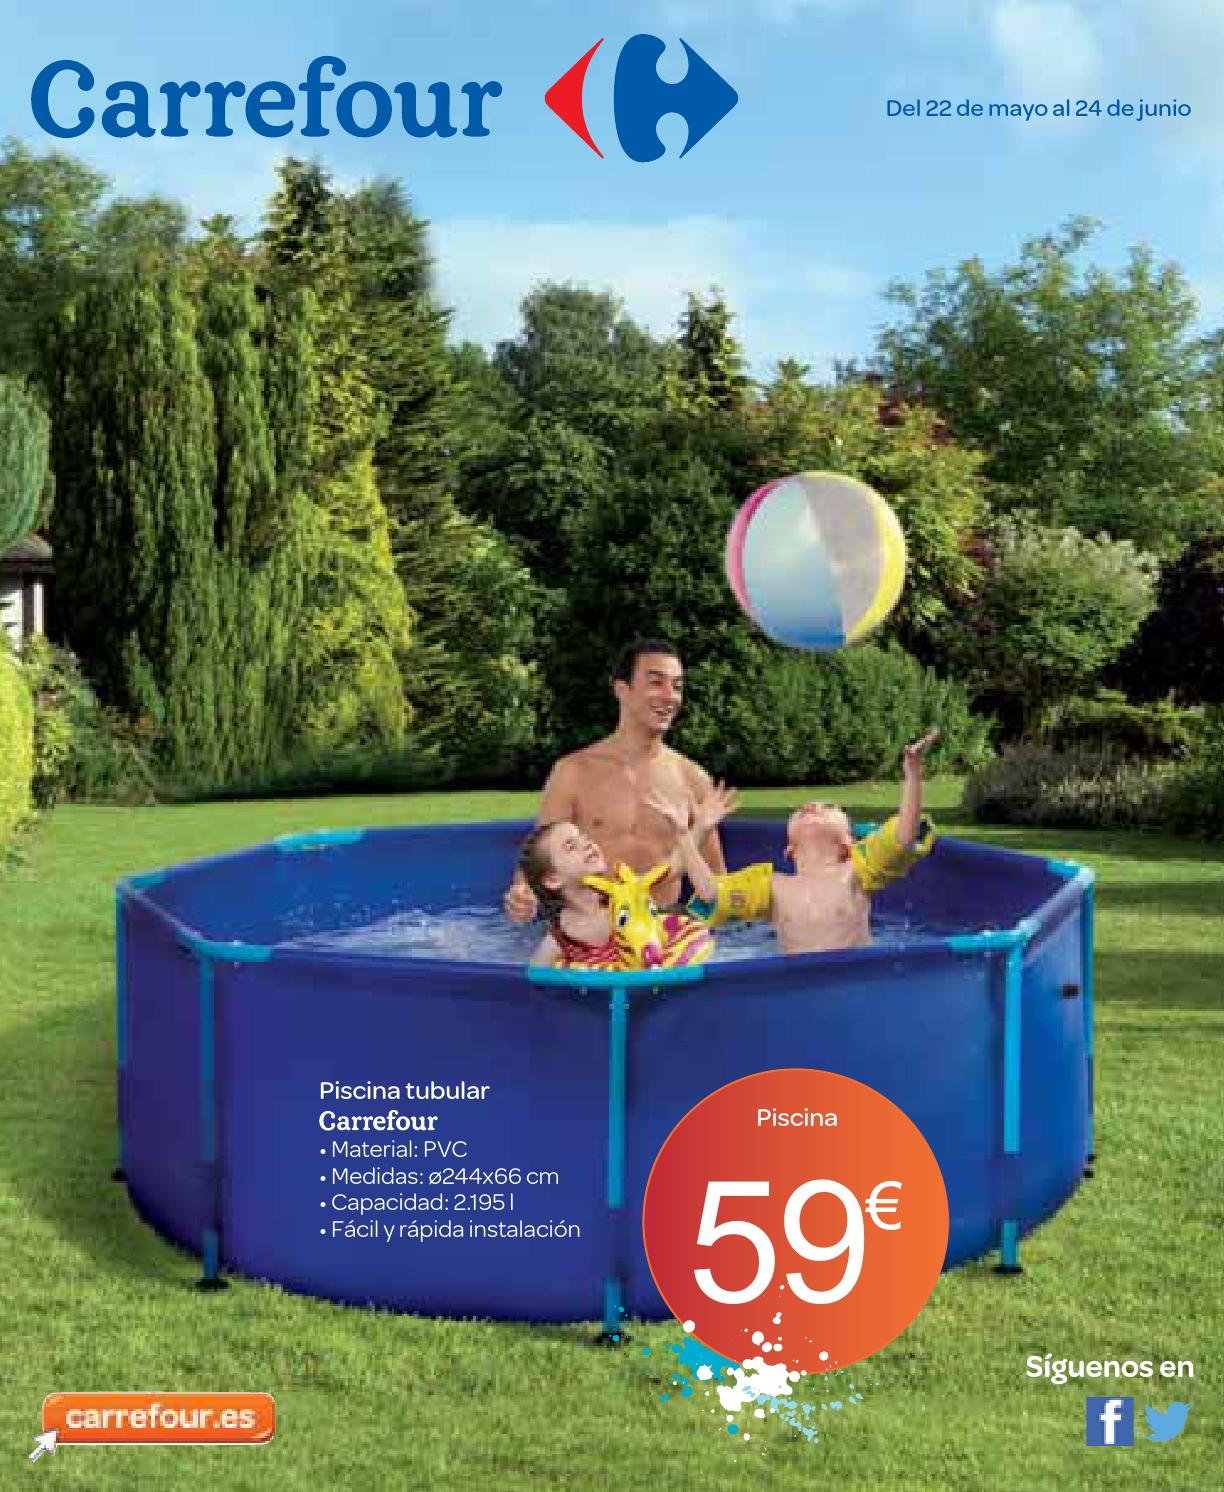 piscina desmontable en carrefour